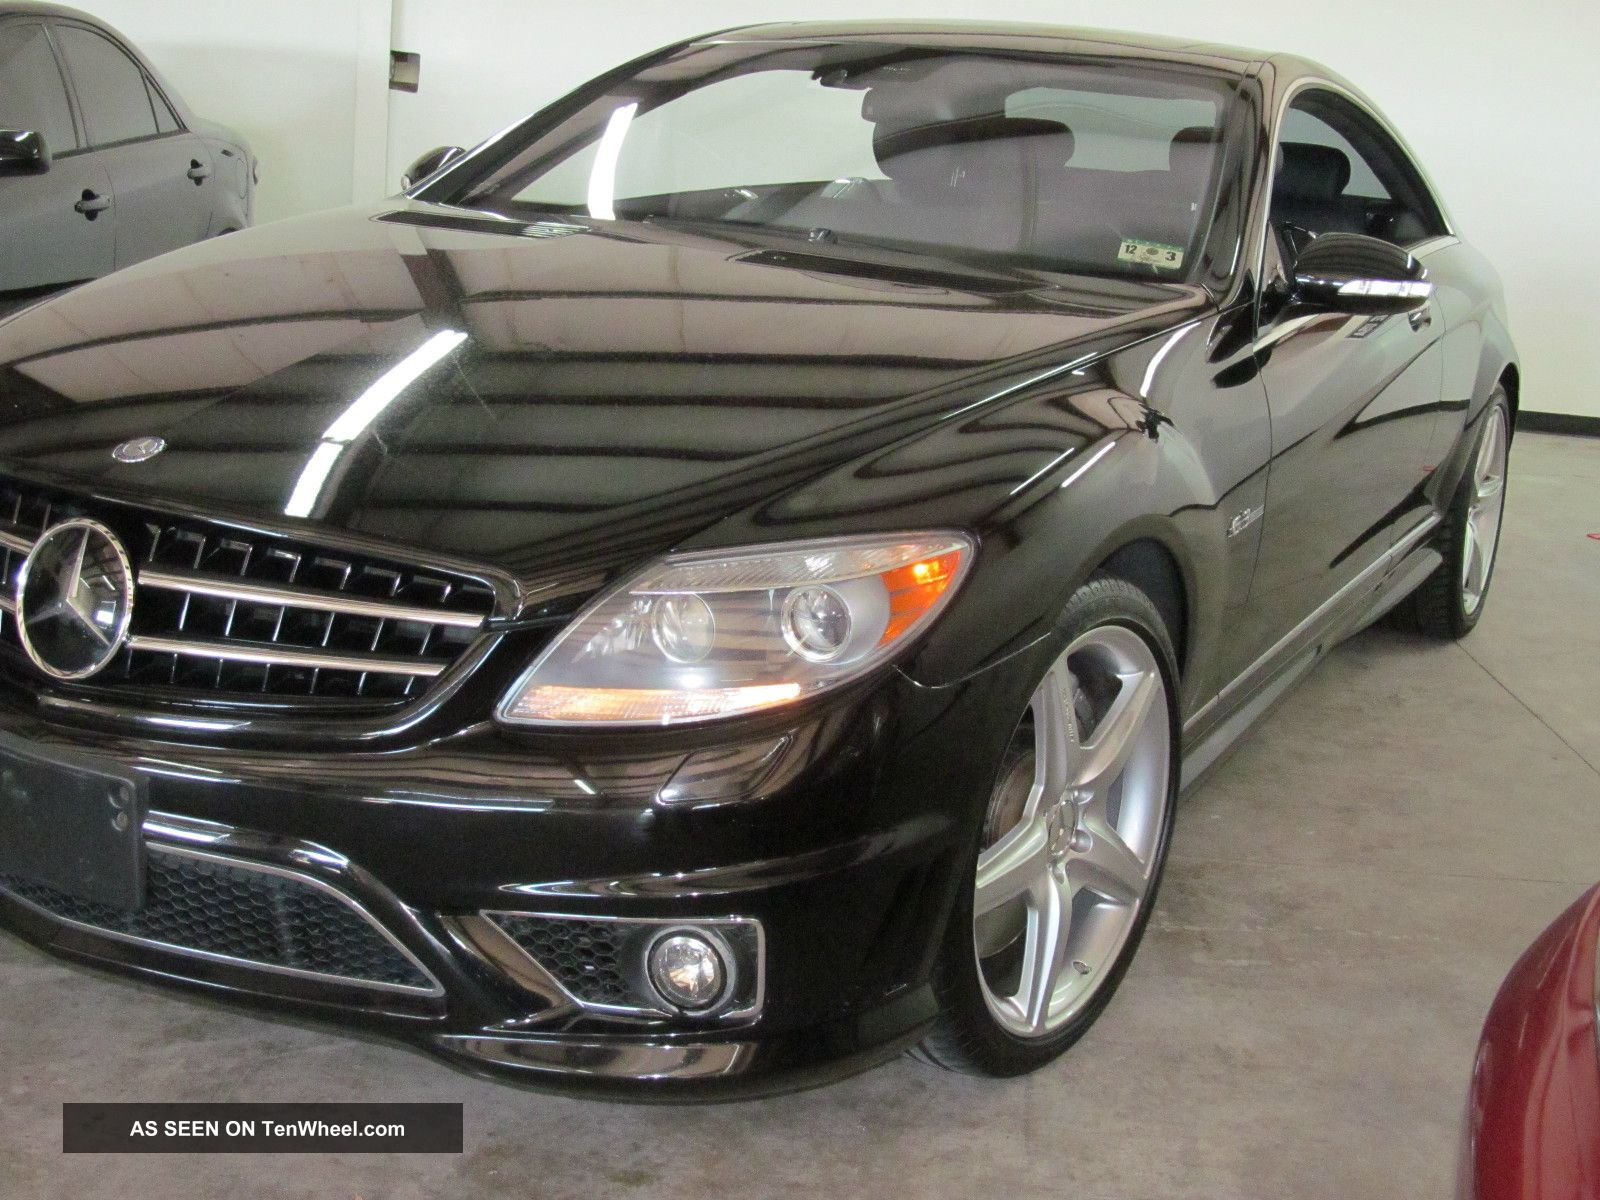 2009 mercedes benz cl63 amg base coupe 2 door 6 3l for 2009 mercedes benz cl63 amg